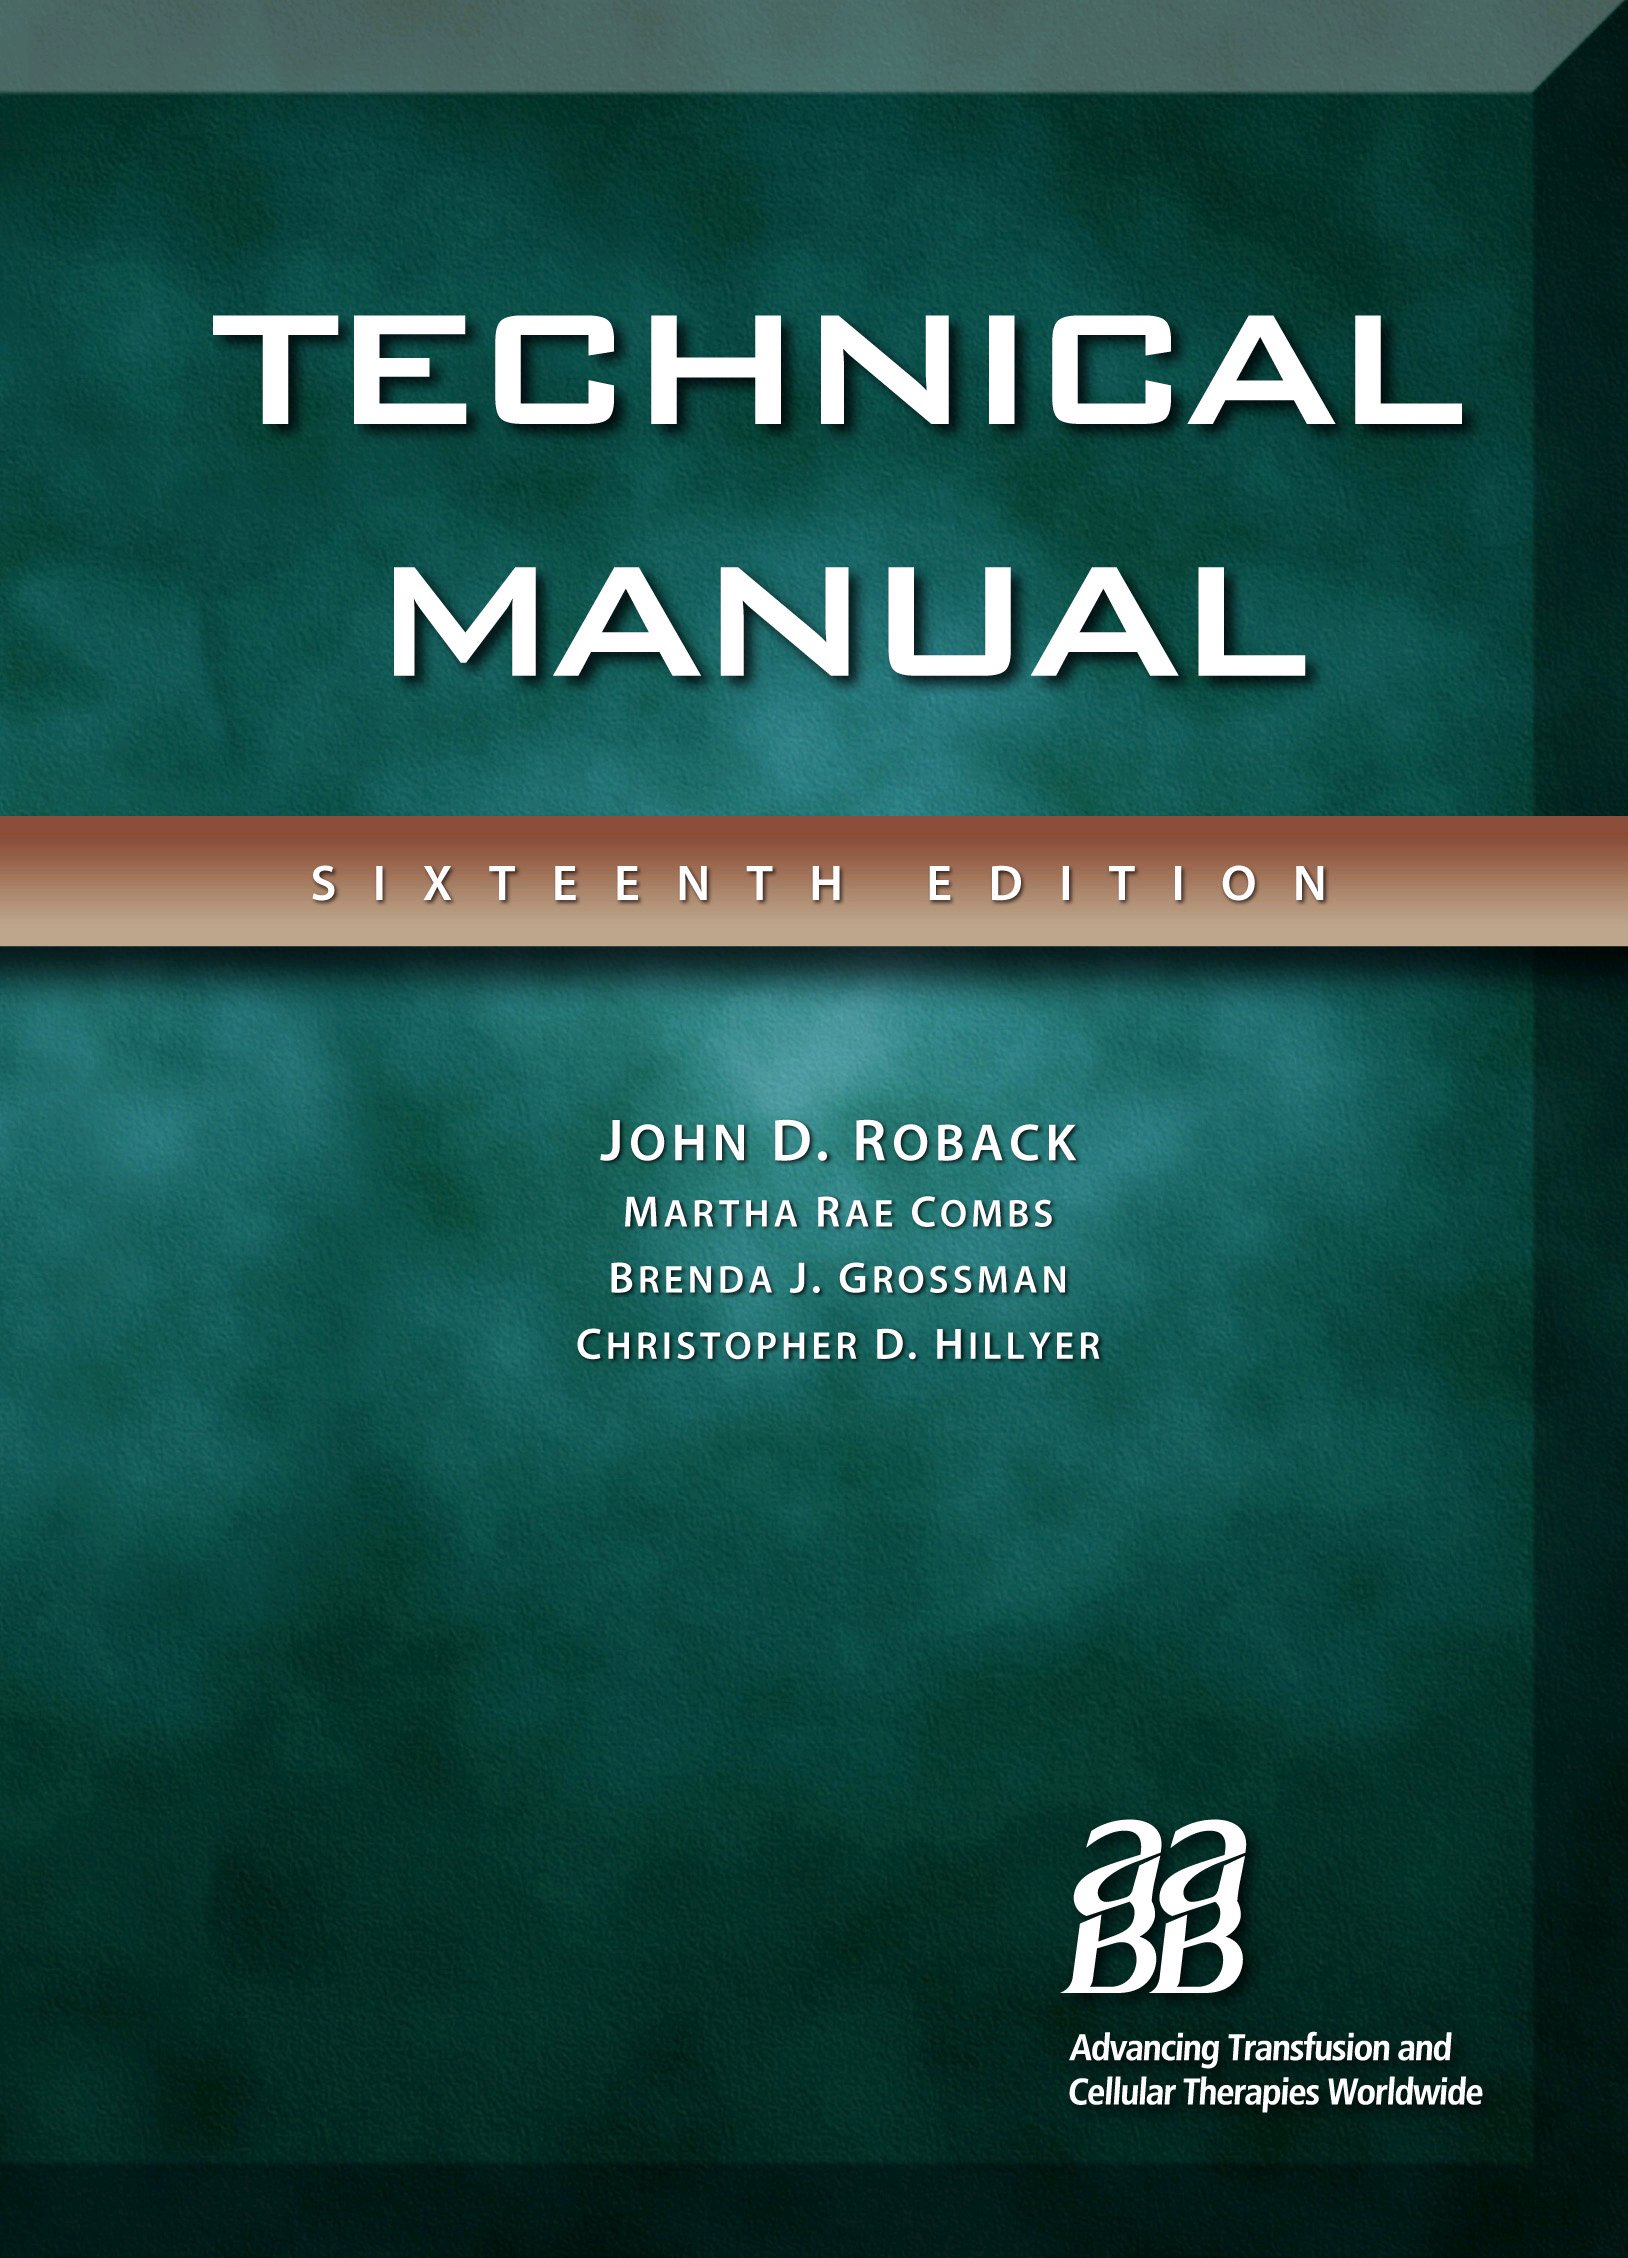 Amazon.in: Buy Technical Manual Book Online at Low Prices in India | Technical  Manual Reviews & Ratings